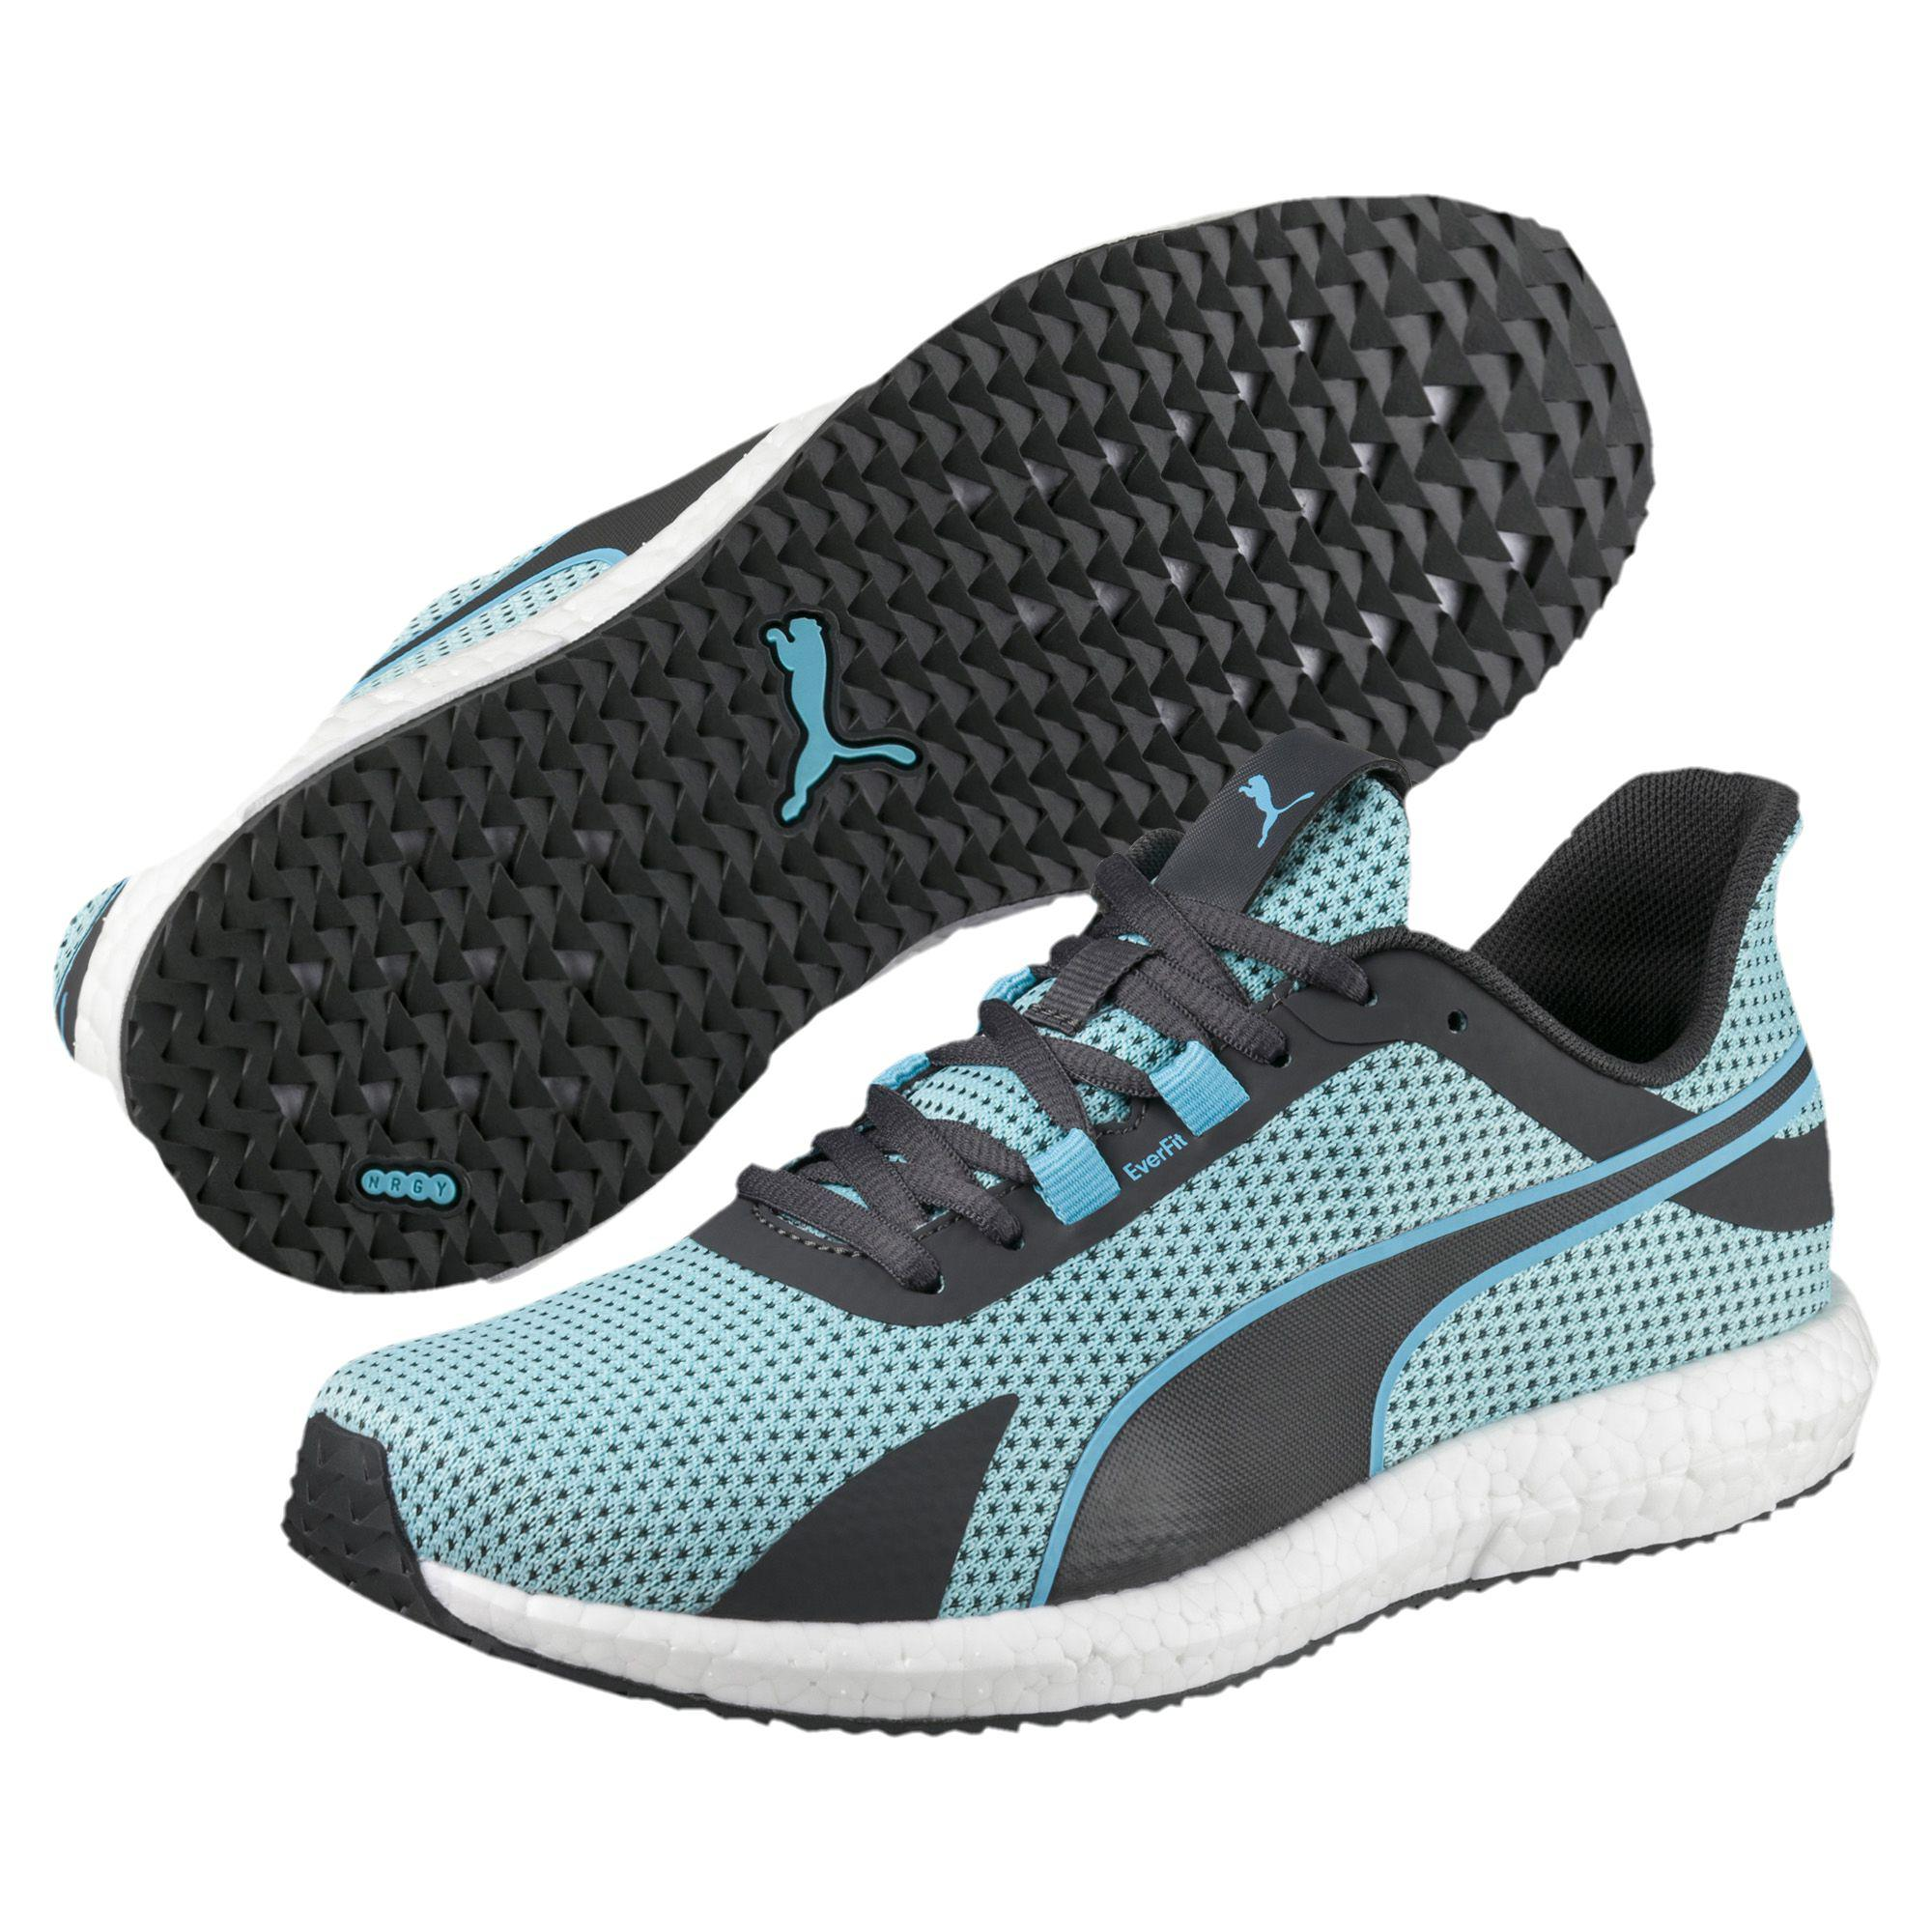 beedaa24191 Lyst - PUMA Mega Nrgy Turbo Women s Running Shoes in Blue